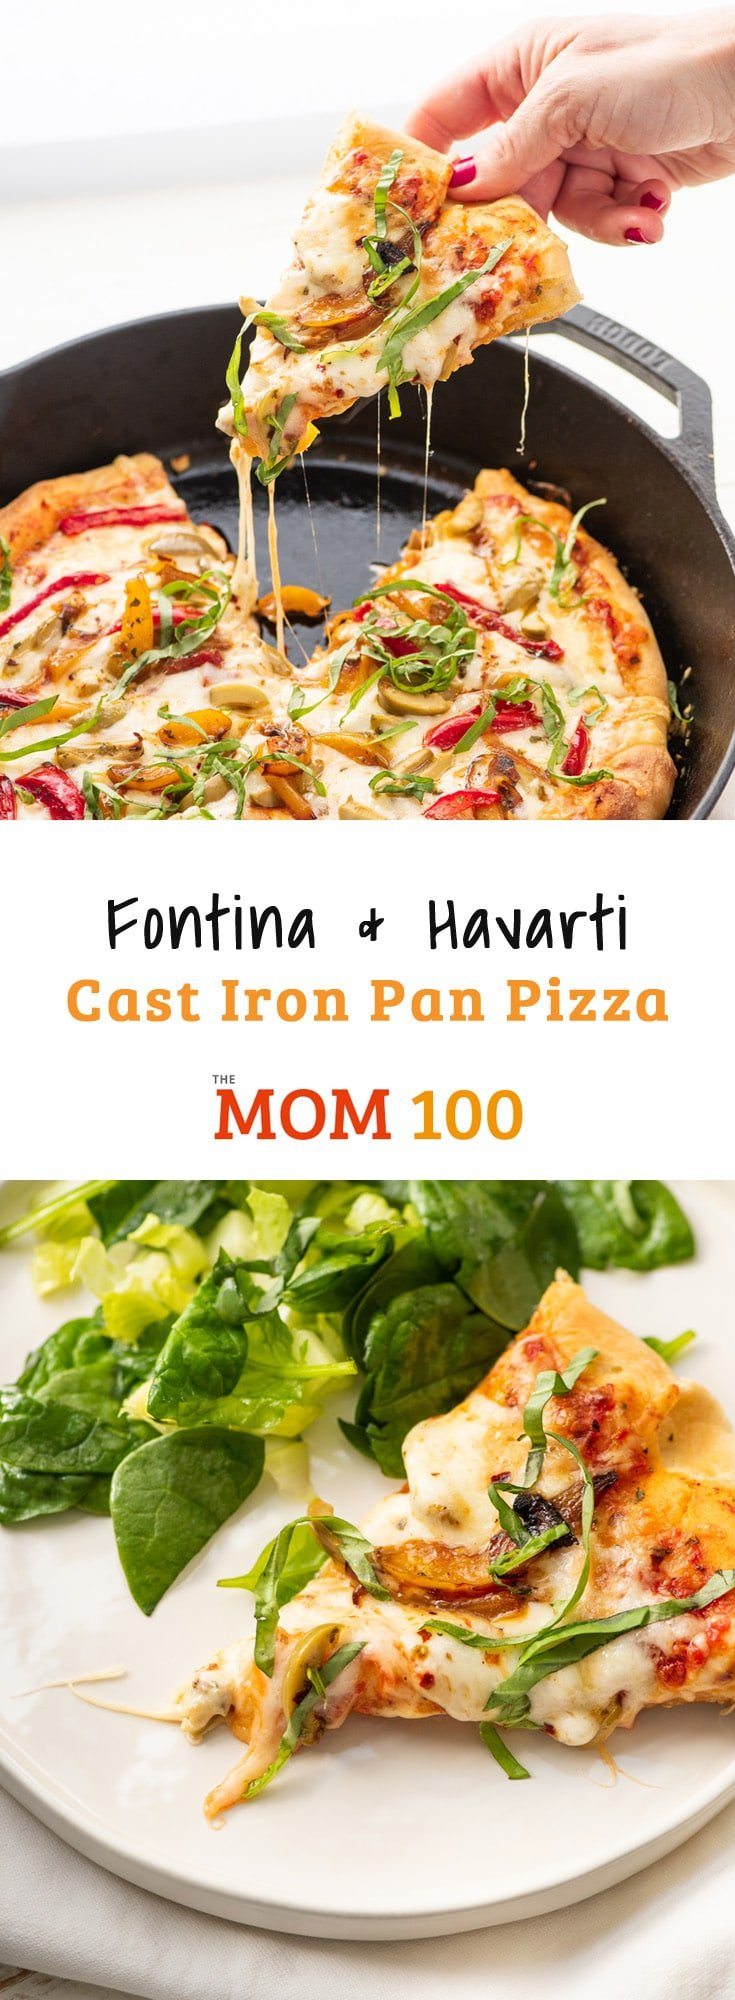 Fontina and Havarti Cast Iron Pan Pizza